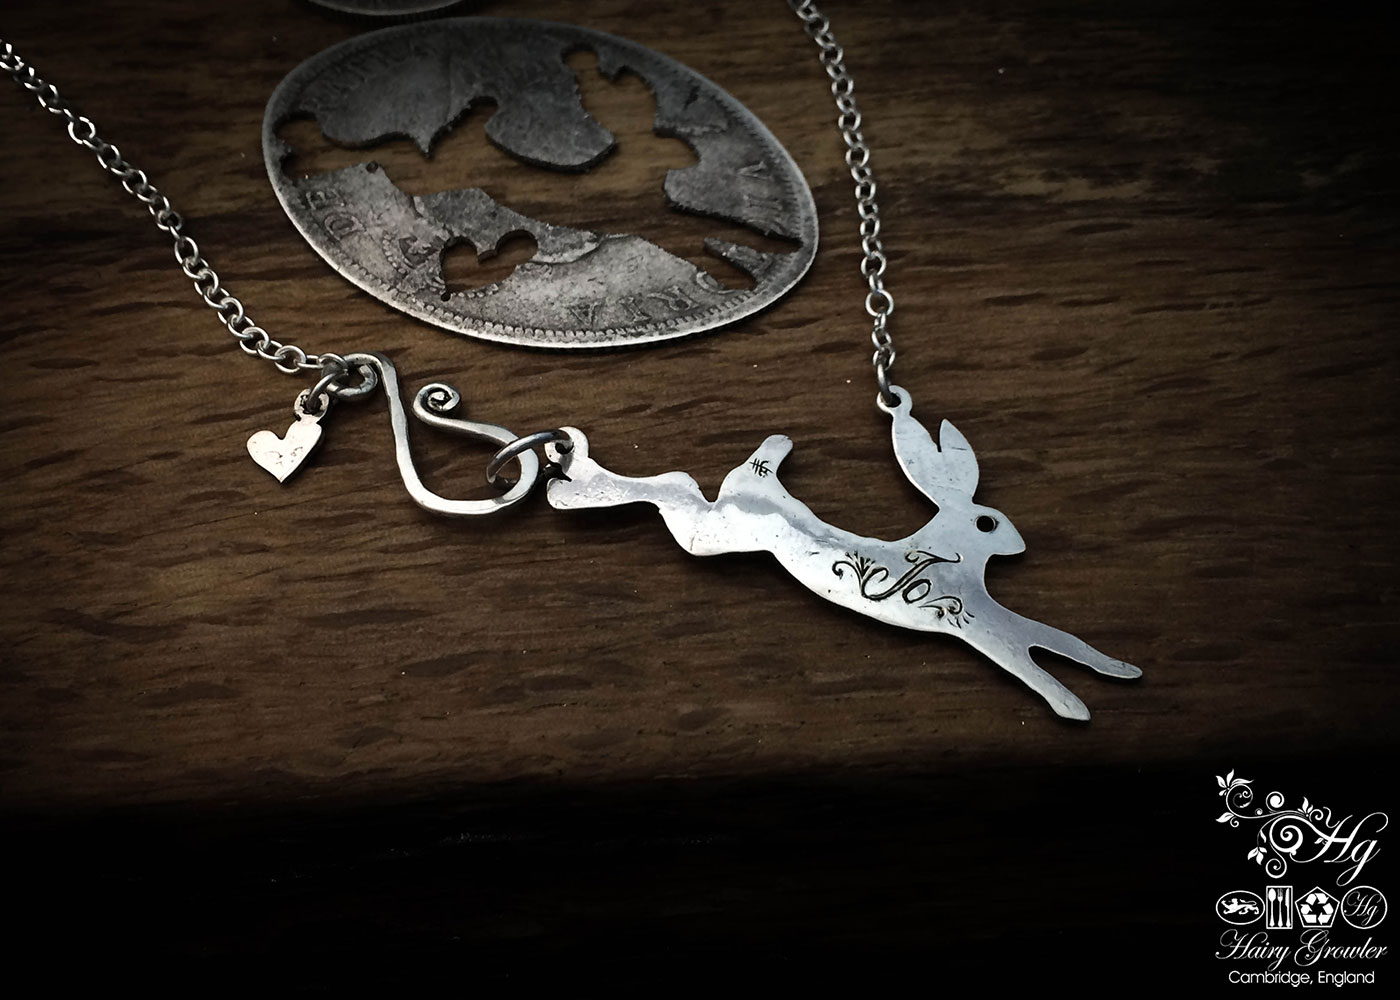 Handcrafted and recycled sterling silver magical leaping hare necklace being cut out of the silver coin